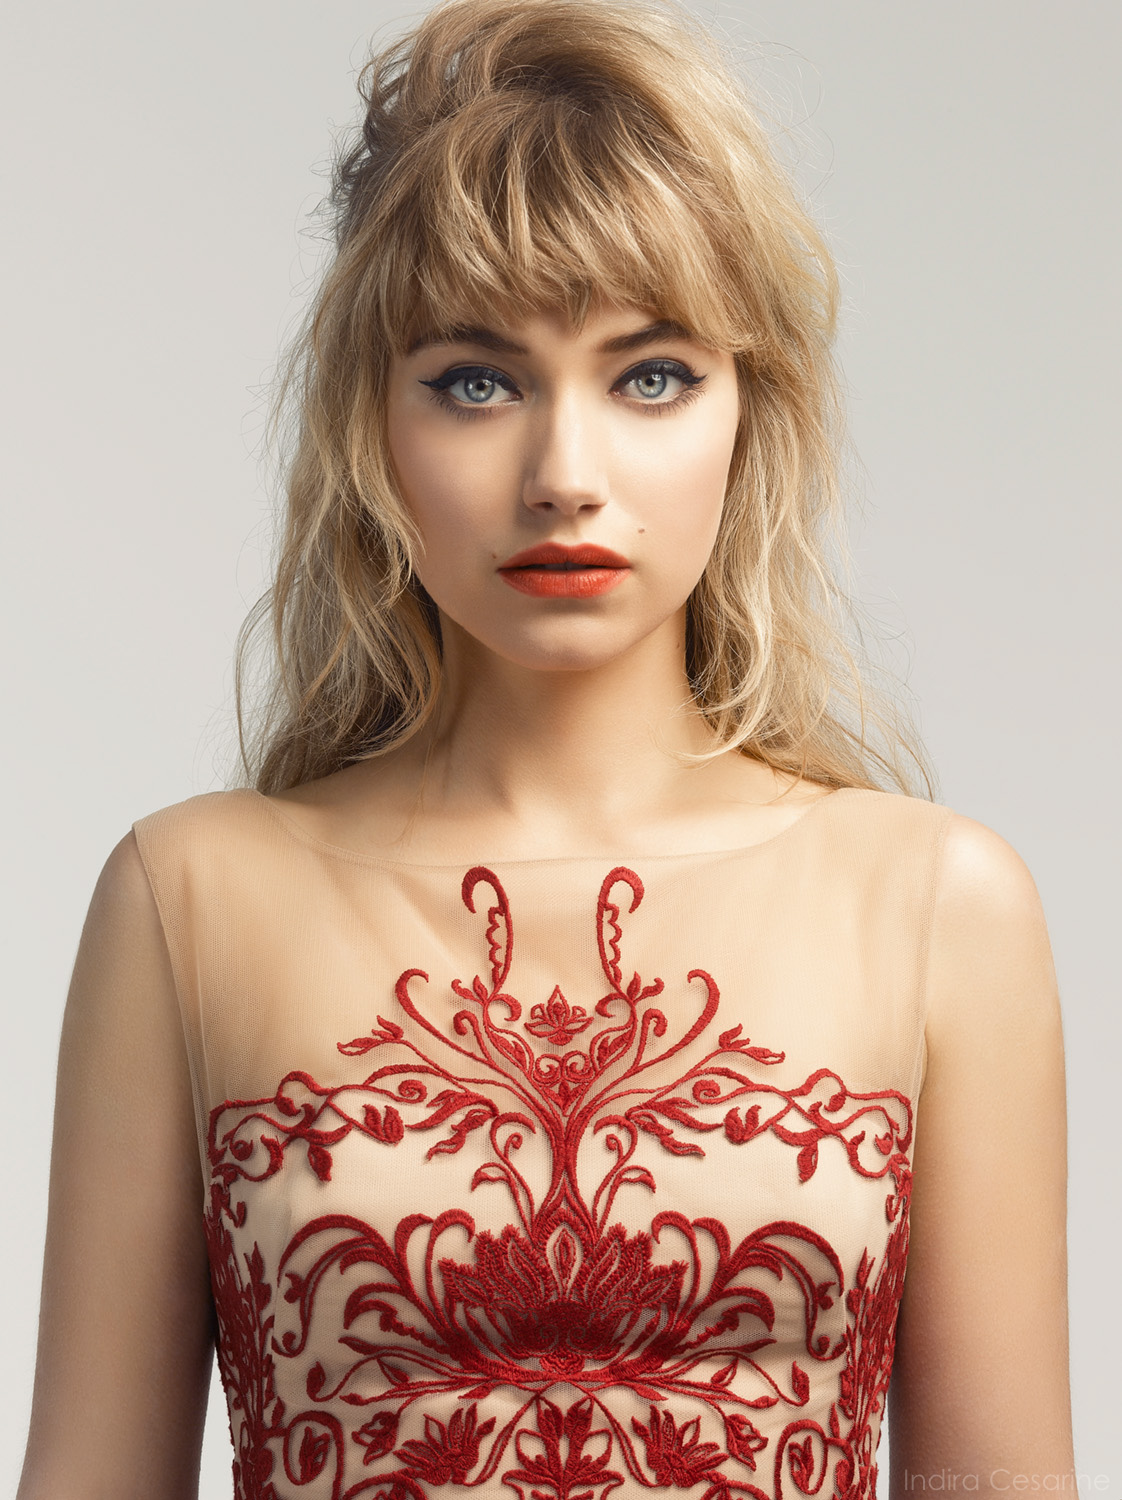 Imogen-Poots-Photography-by-Indira-Cesarine-008.jpg